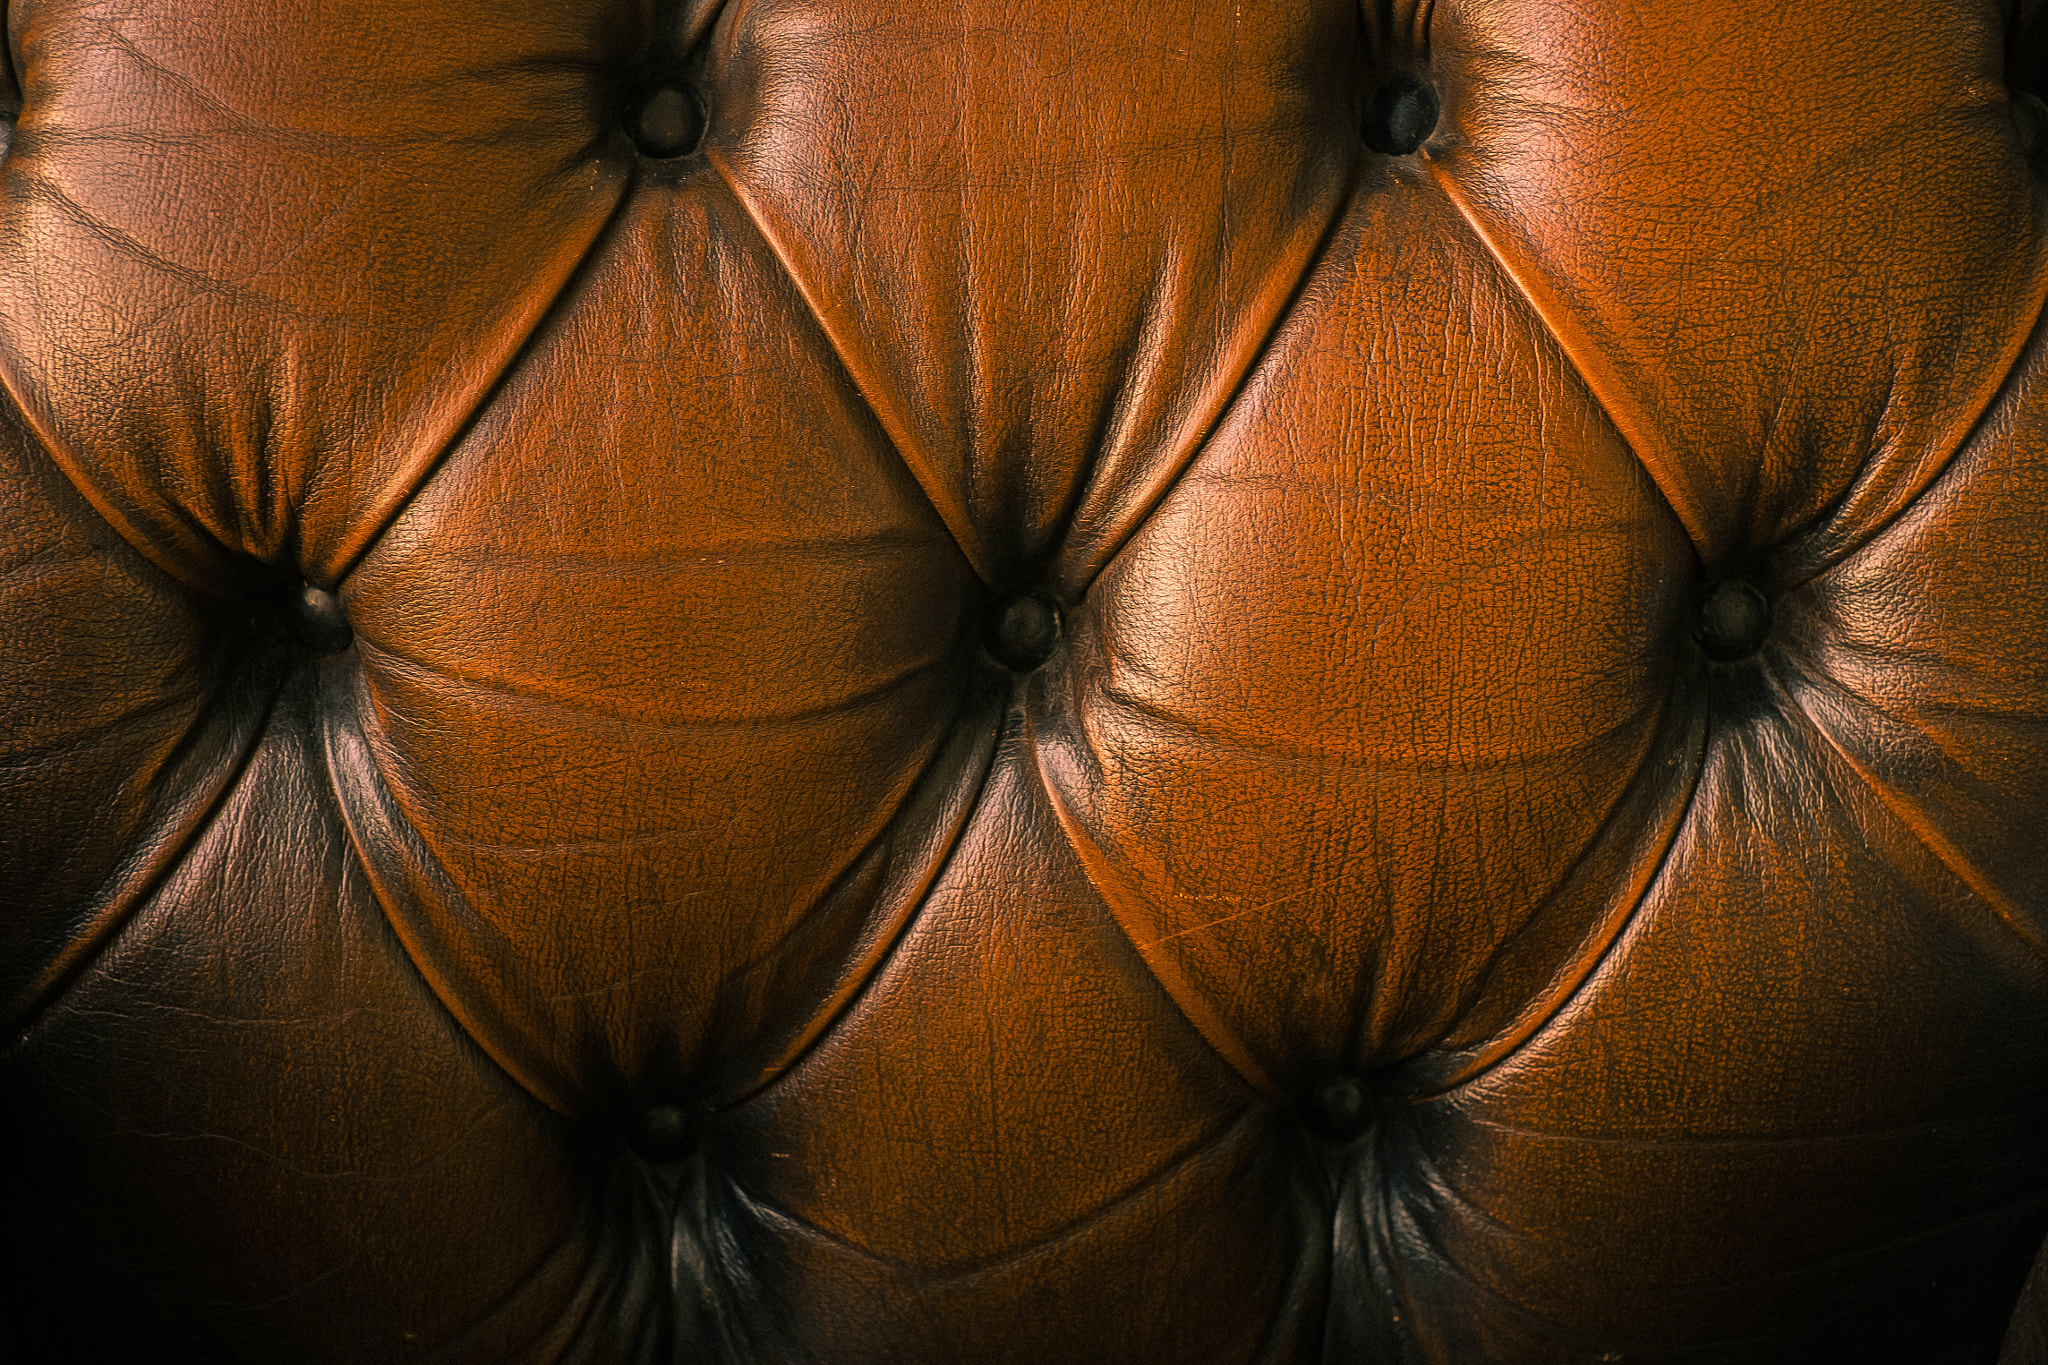 Chesterfield Sofa Texture Photograph Chesterfield Leather By Kris Vandecruys On 500px